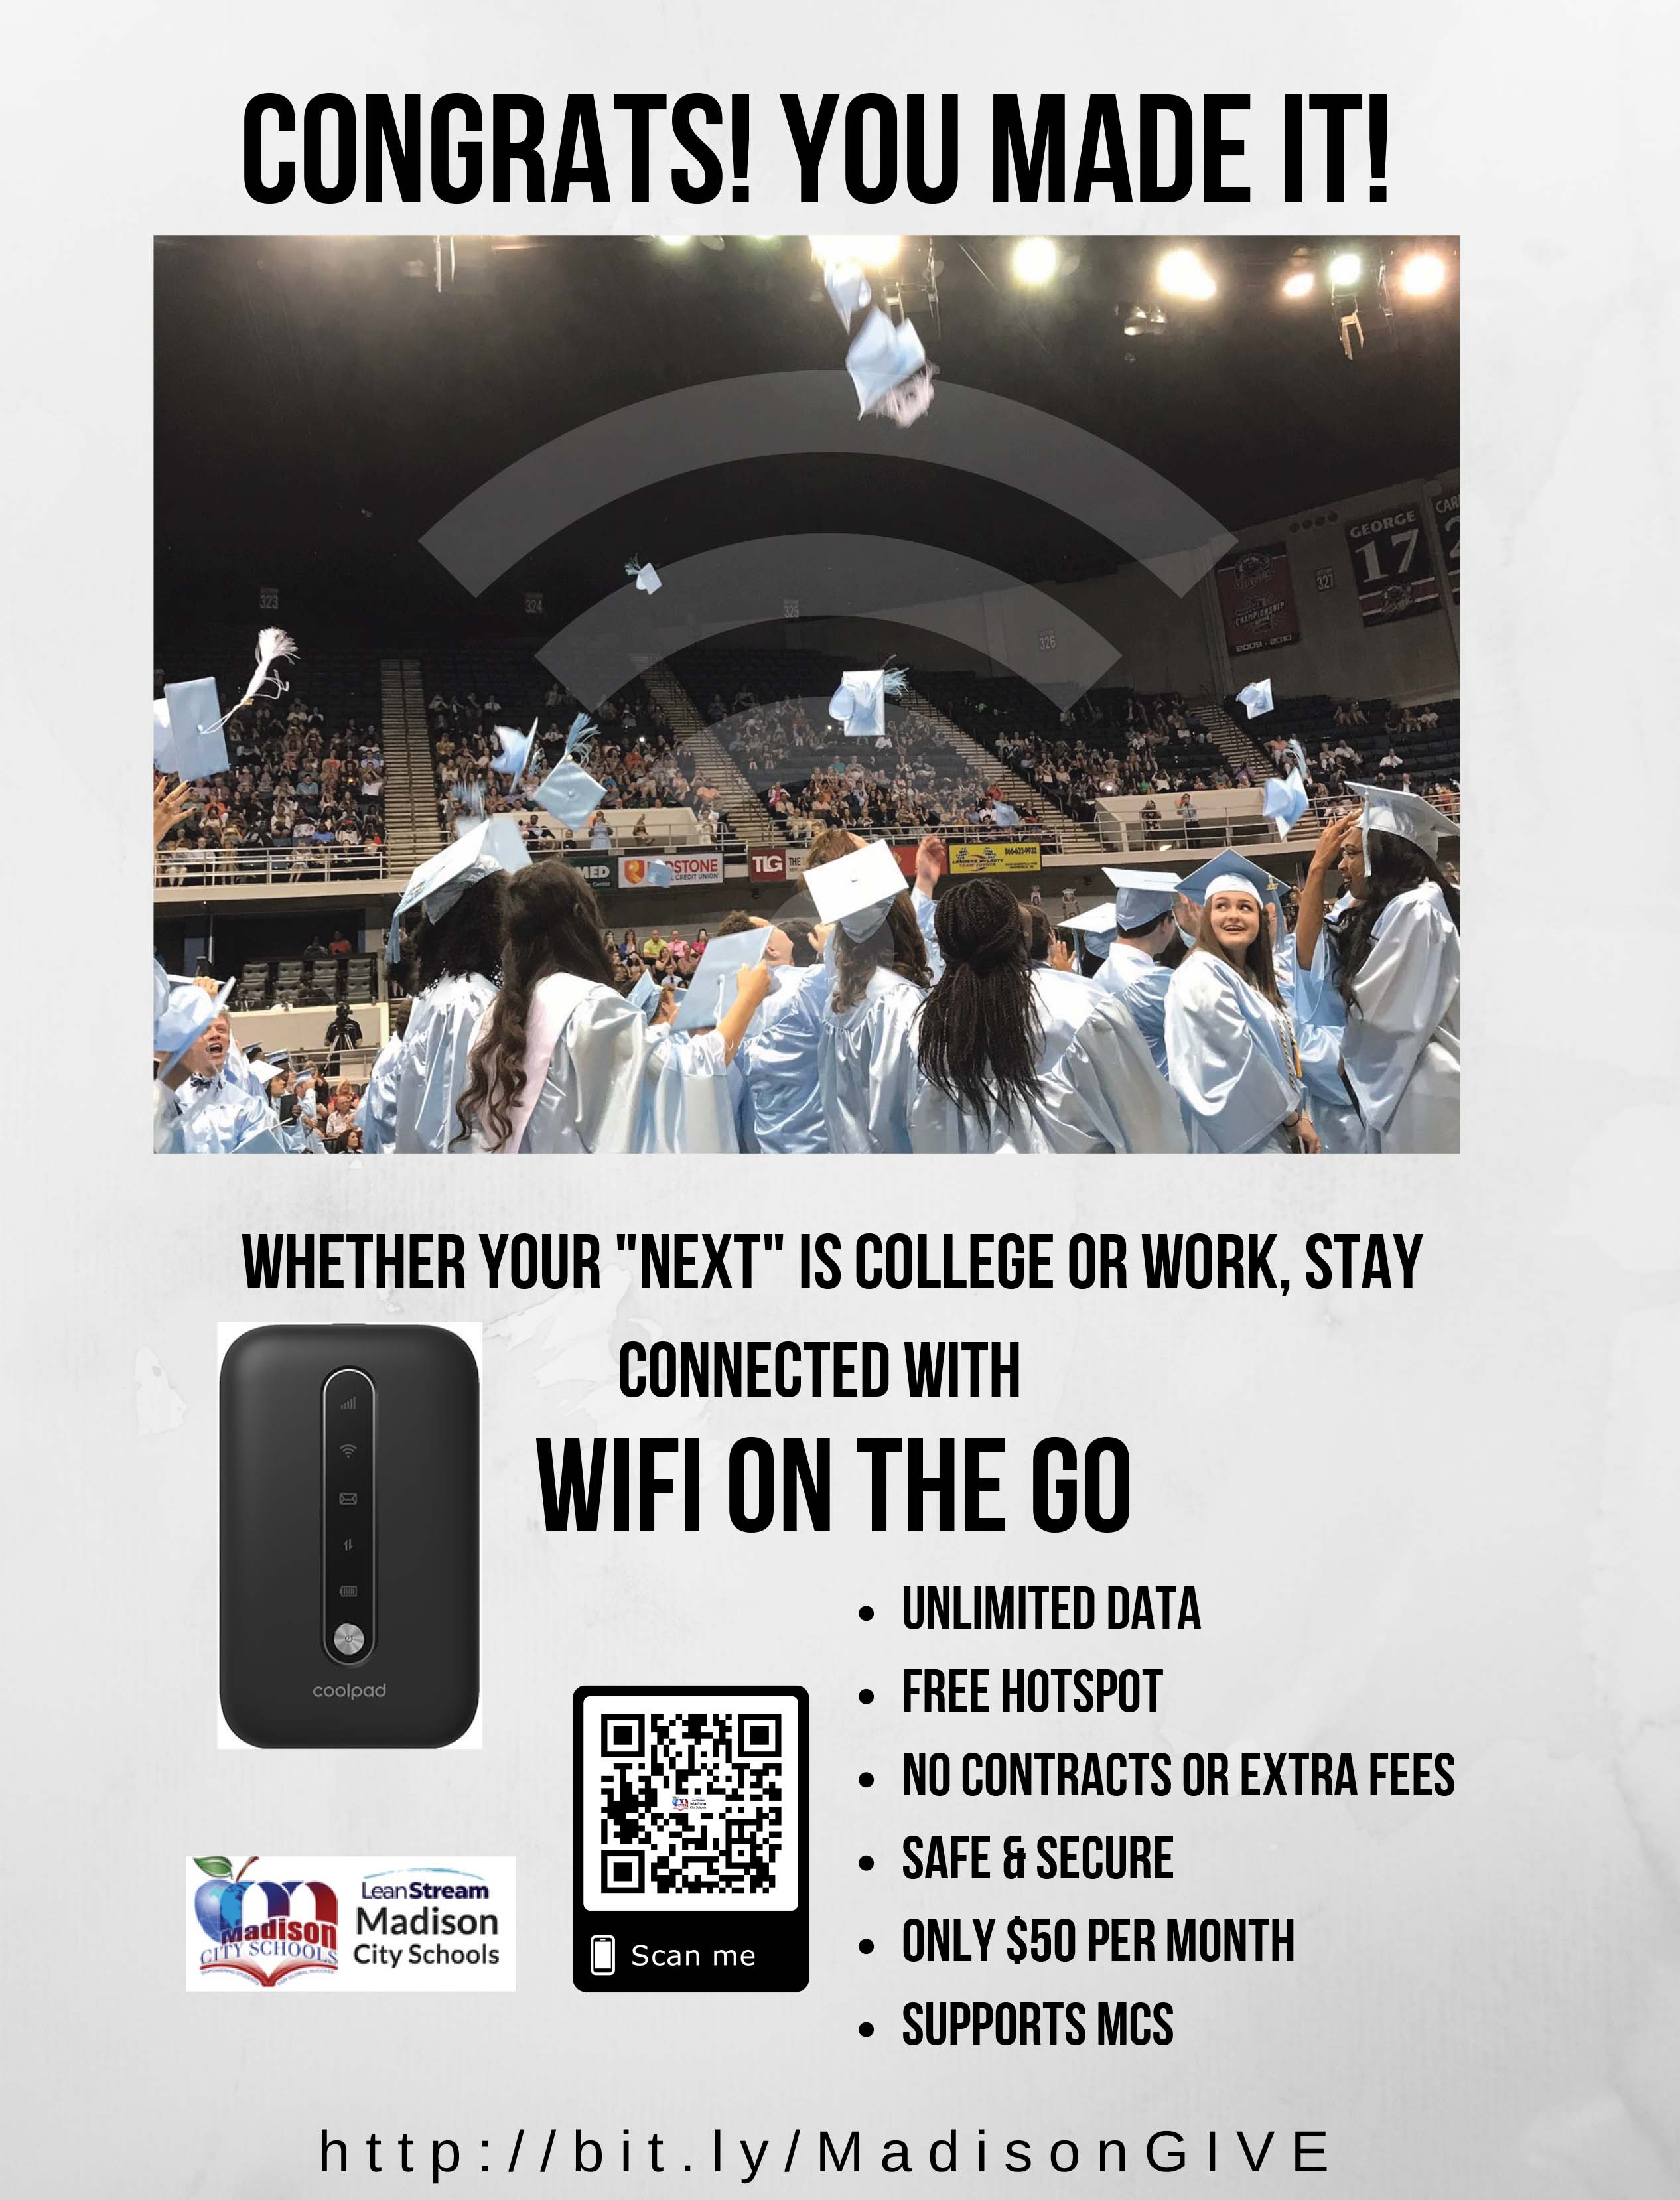 WiFi On the Go Information